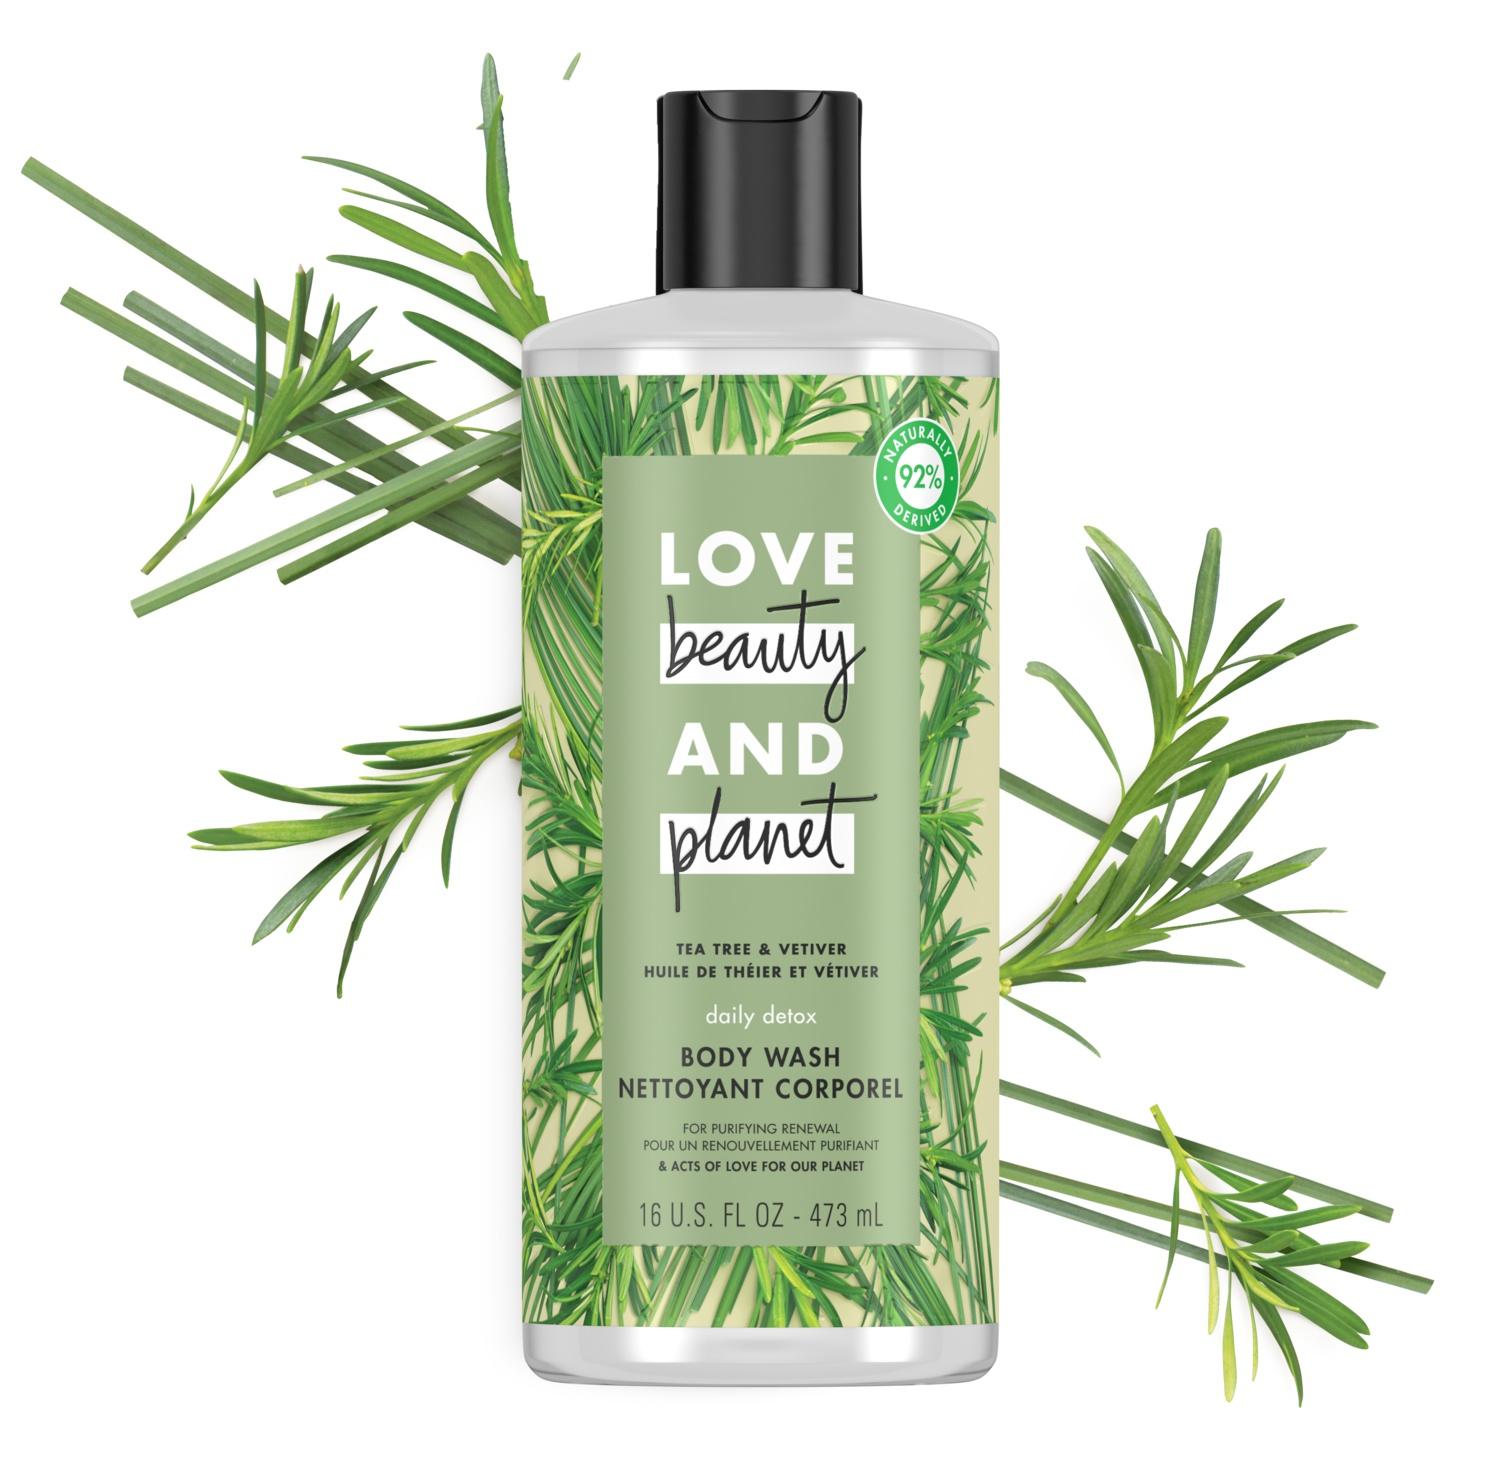 Love beauty and planet Tea Tree & Vetiver Body Wash